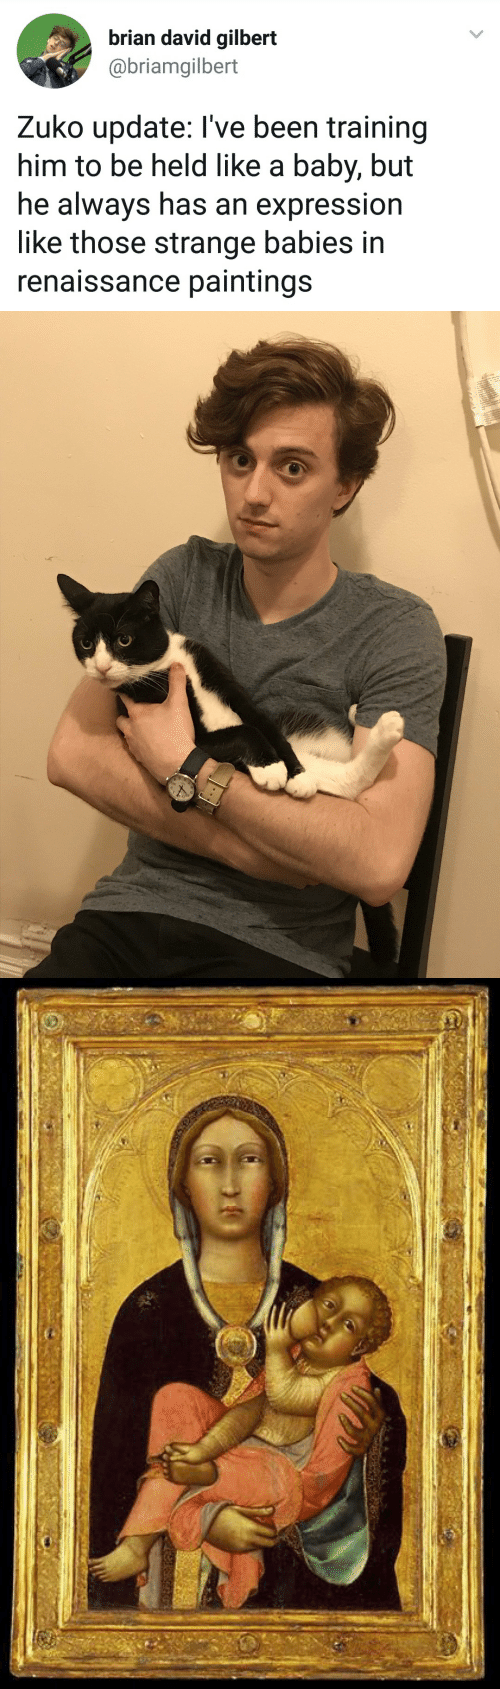 Paintings, Baby, and Been: brian david gilbert  @briamgilbert  Zuko update: I've been training  him to be held like a baby, but  he always has an expression  like those strange babies in  renaissance paintings